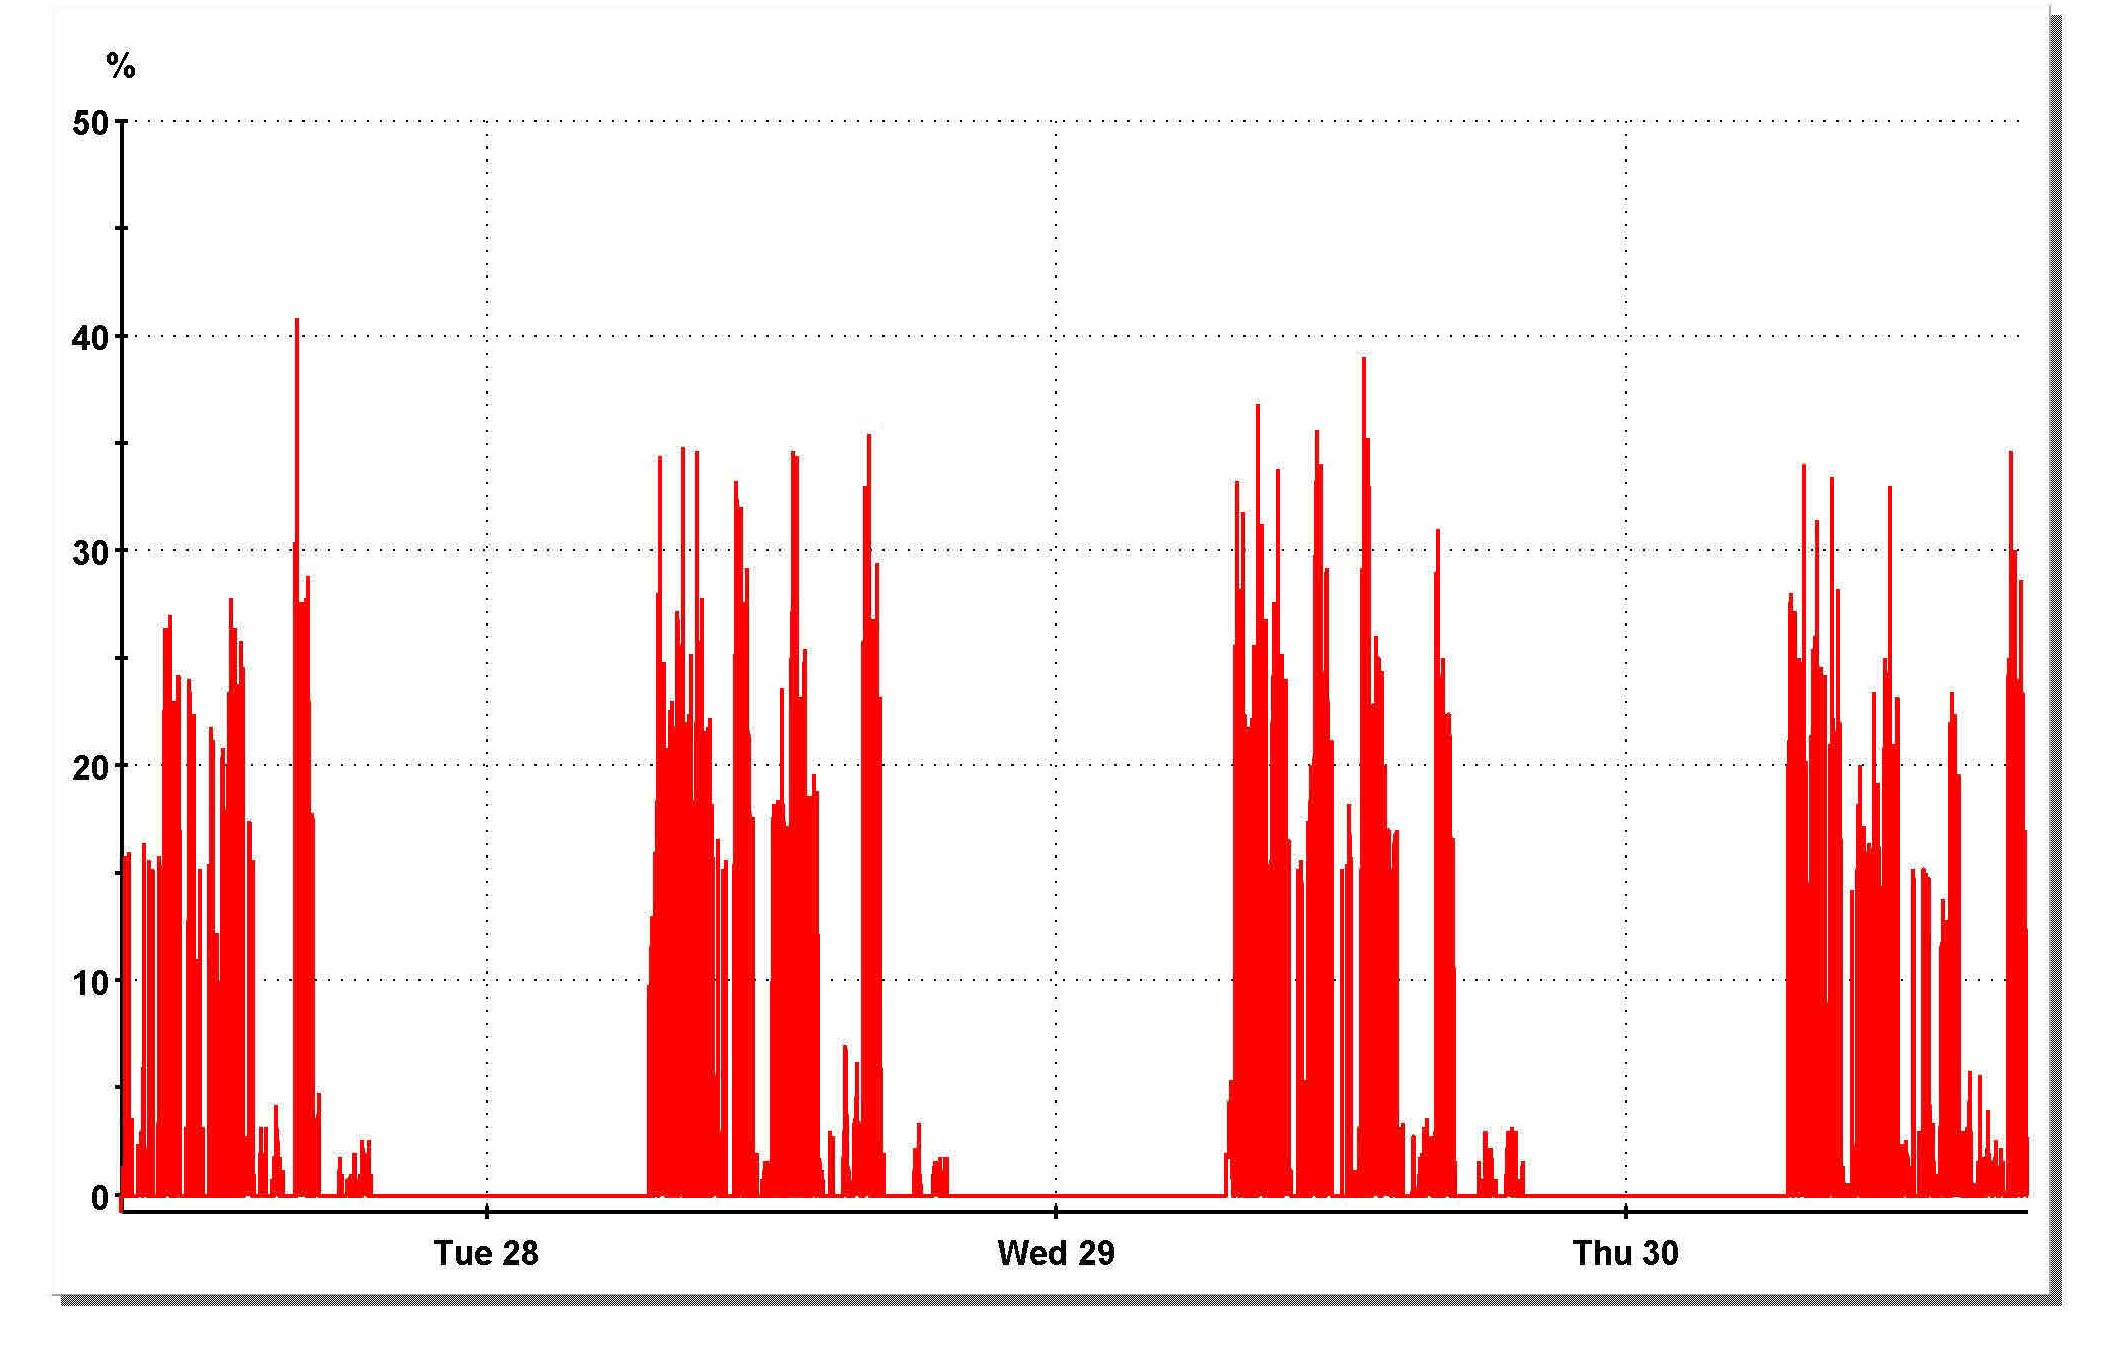 What a Building's Hot Water Load Profile Looks Like